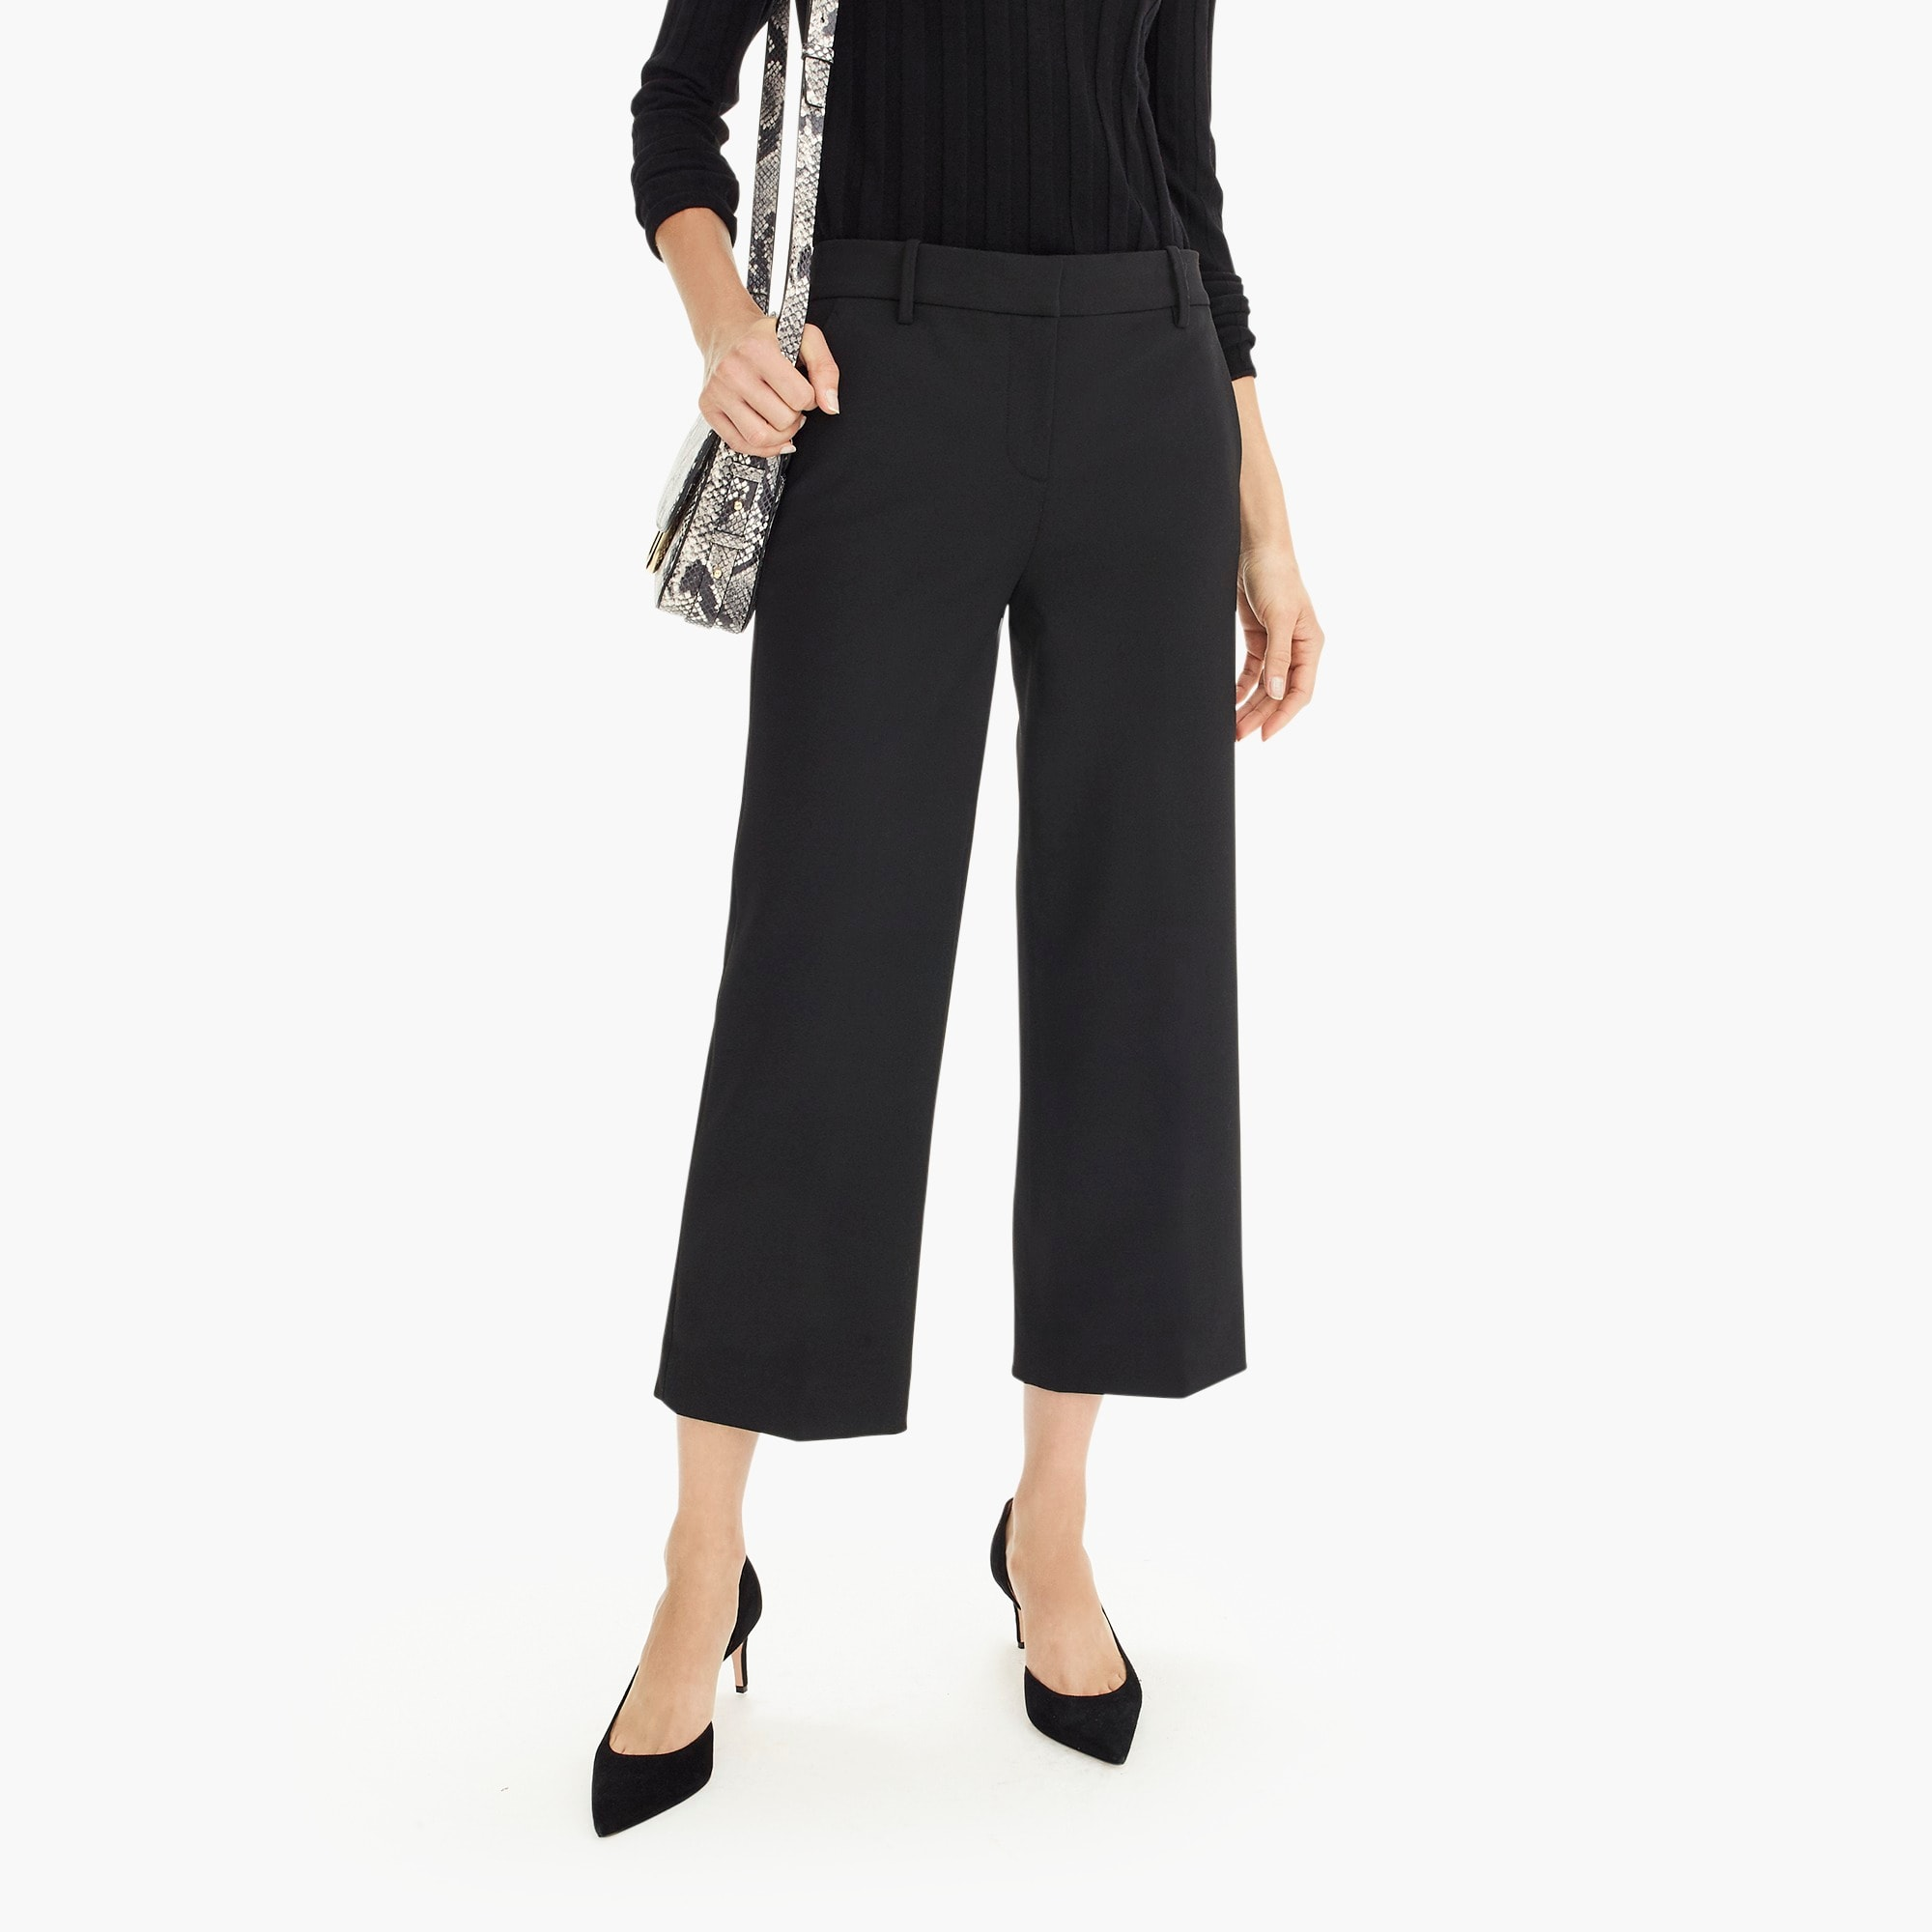 high-rise peyton wide-leg pant in four-season stretch